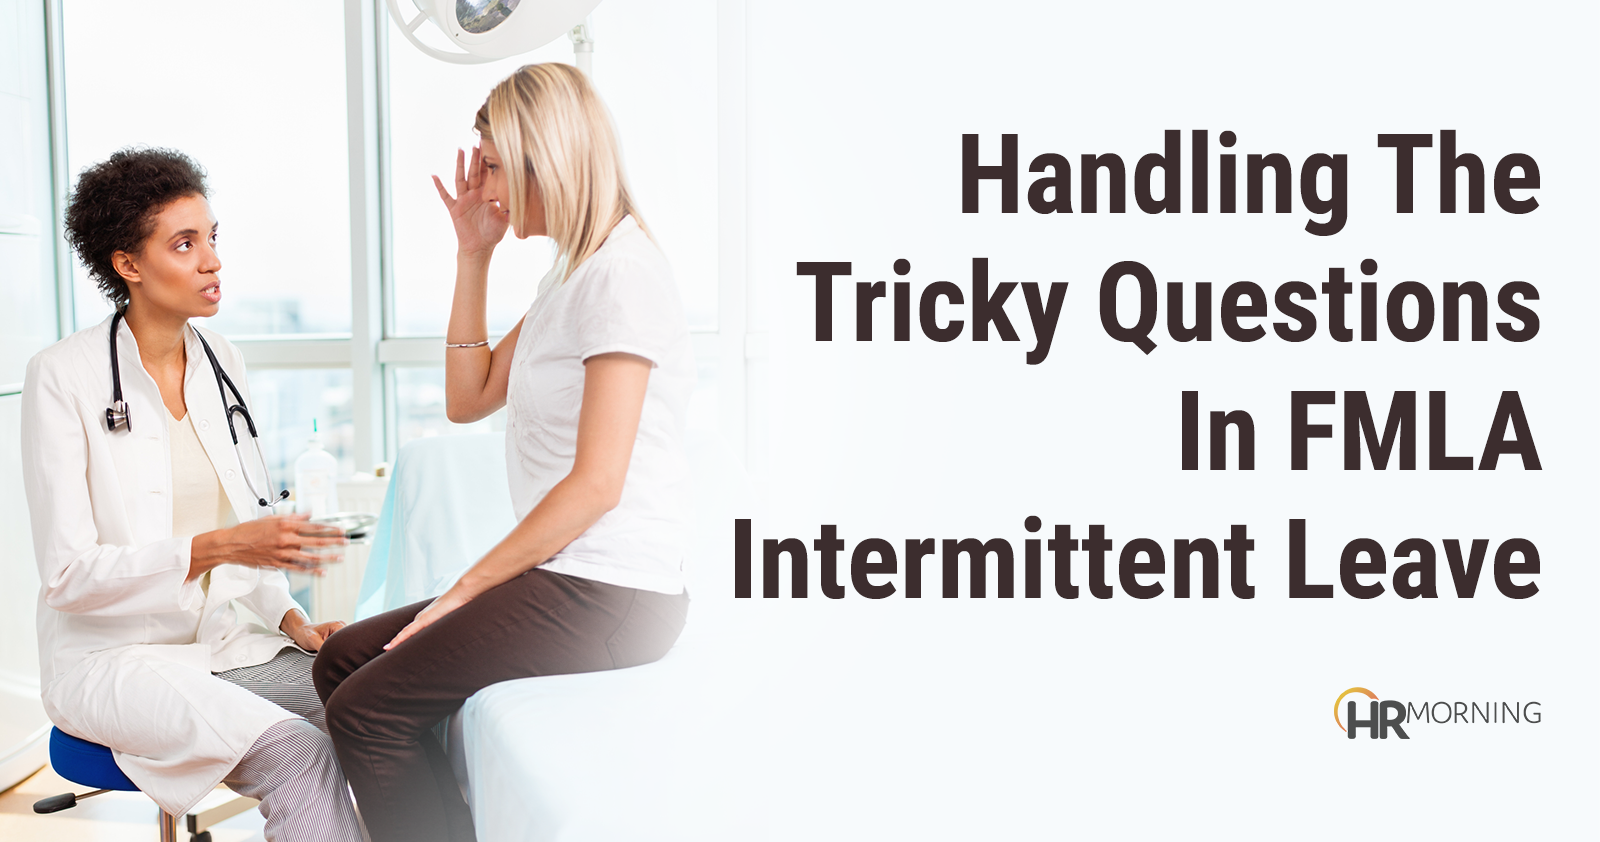 Handling the Tricky Questions in FMLA Intermittent Leave